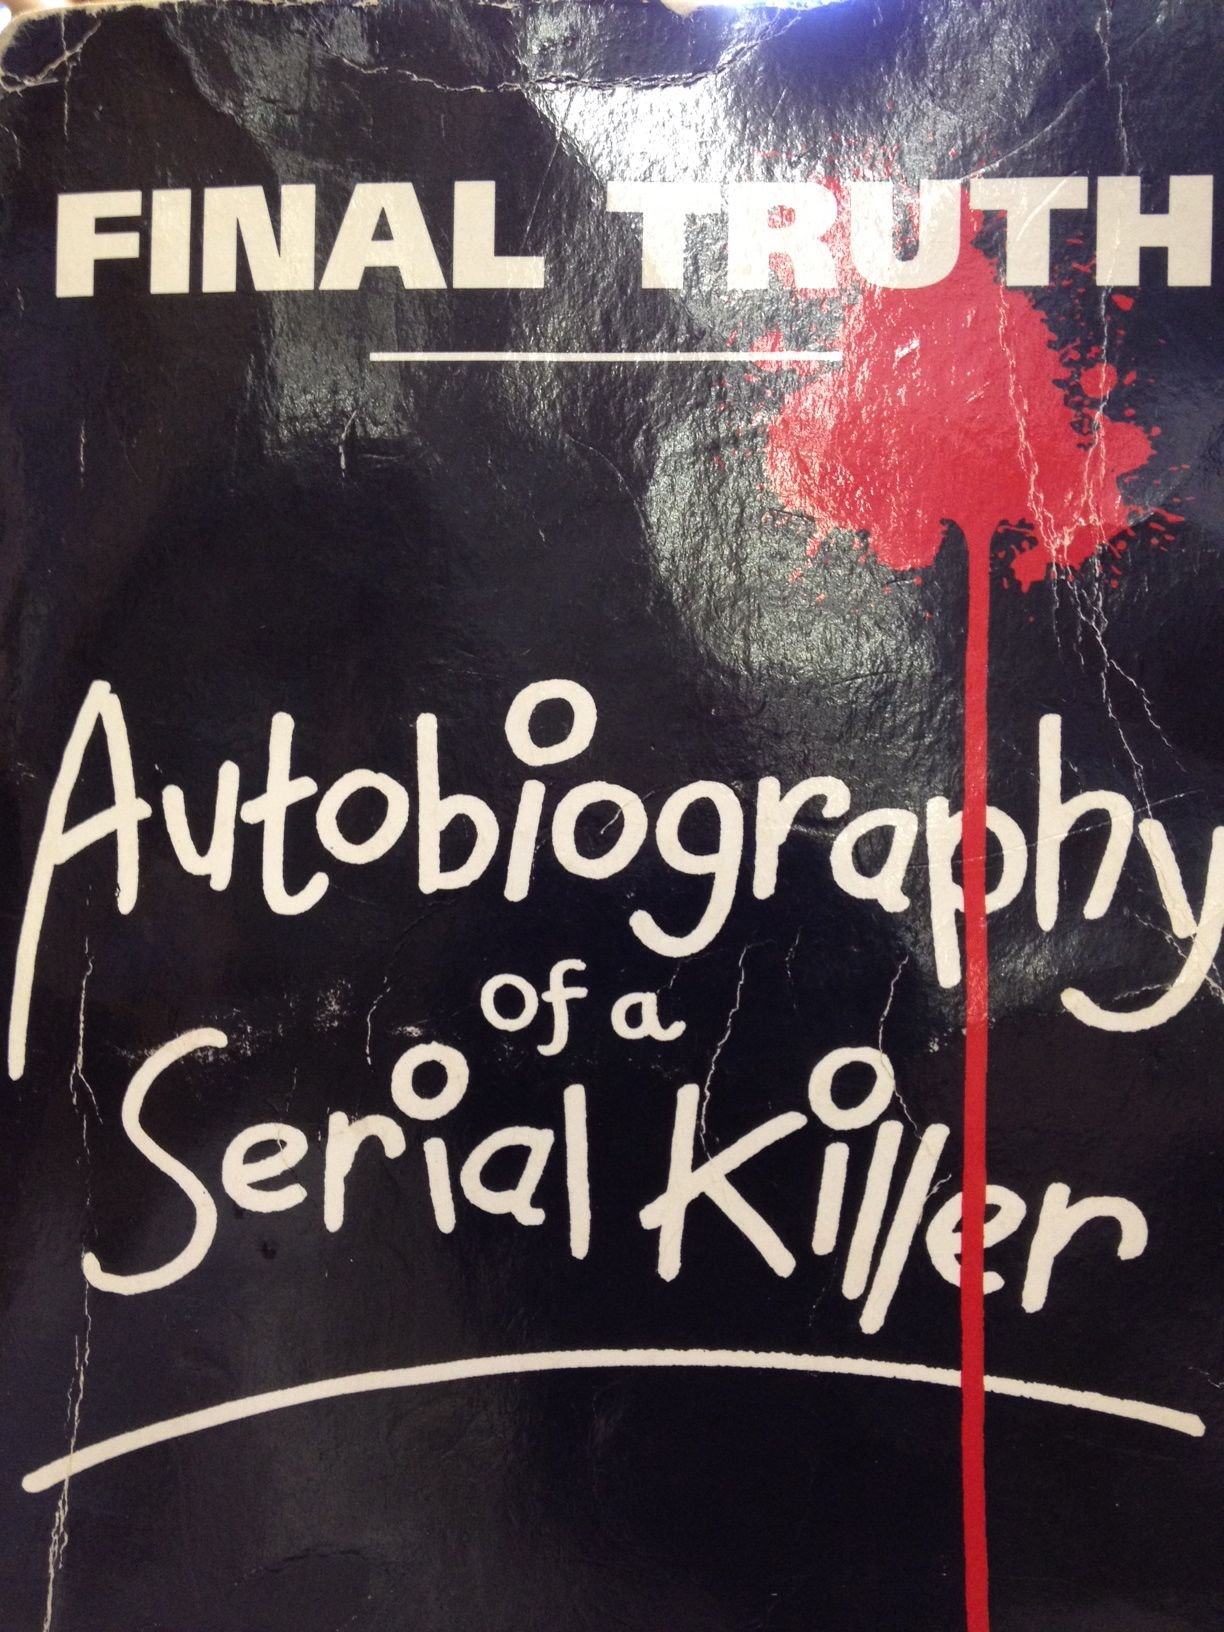 Final truth autobiography of a serial killer donald pee wee final truth autobiography of a serial killer donald pee wee gaskins wilton earle 9781852864941 amazon books fandeluxe Images